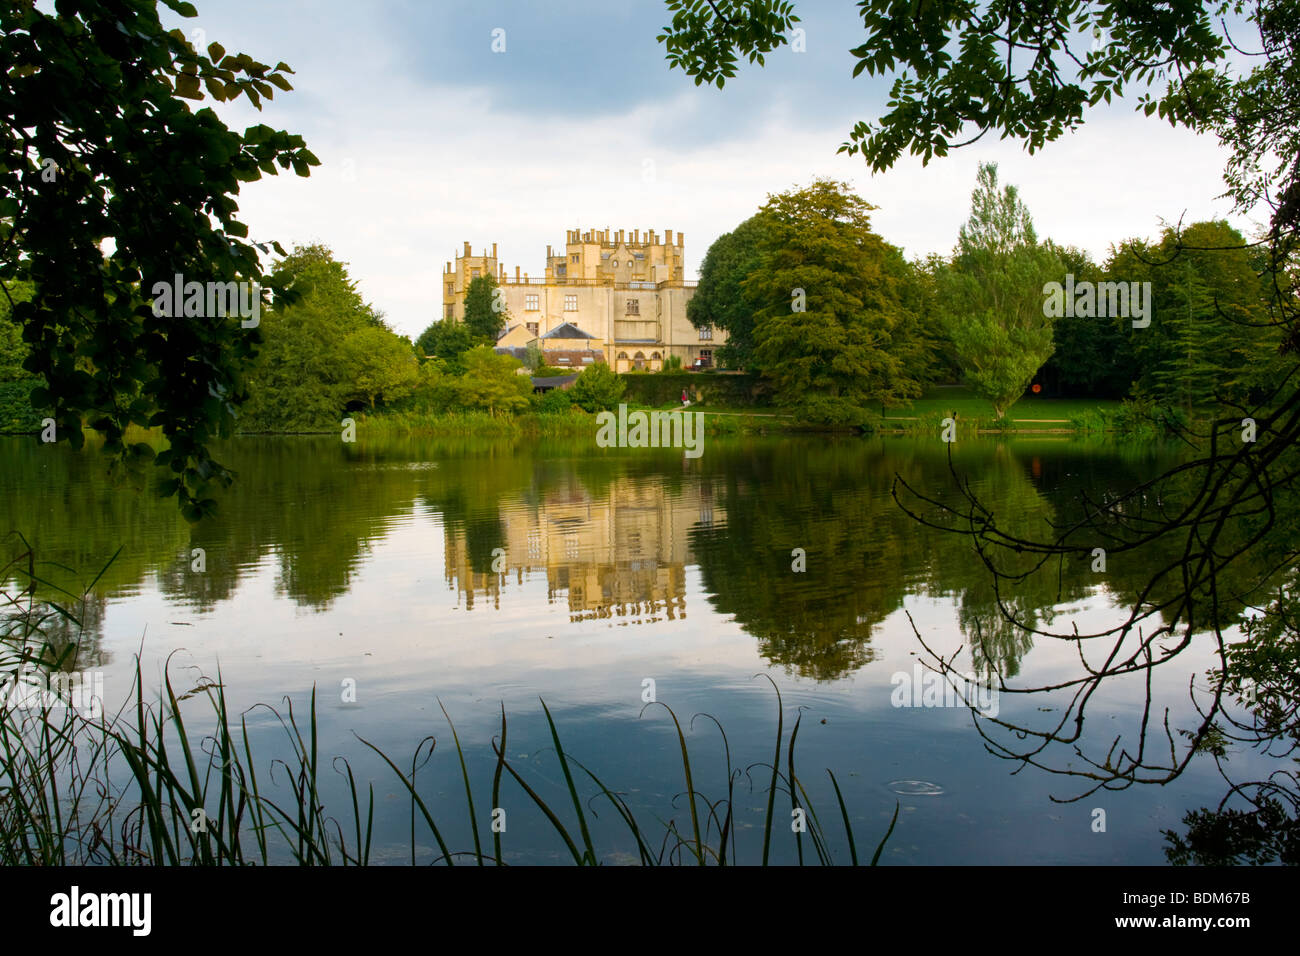 Lake in the grounds of Sherborne Castle, Dorset England - Stock Image